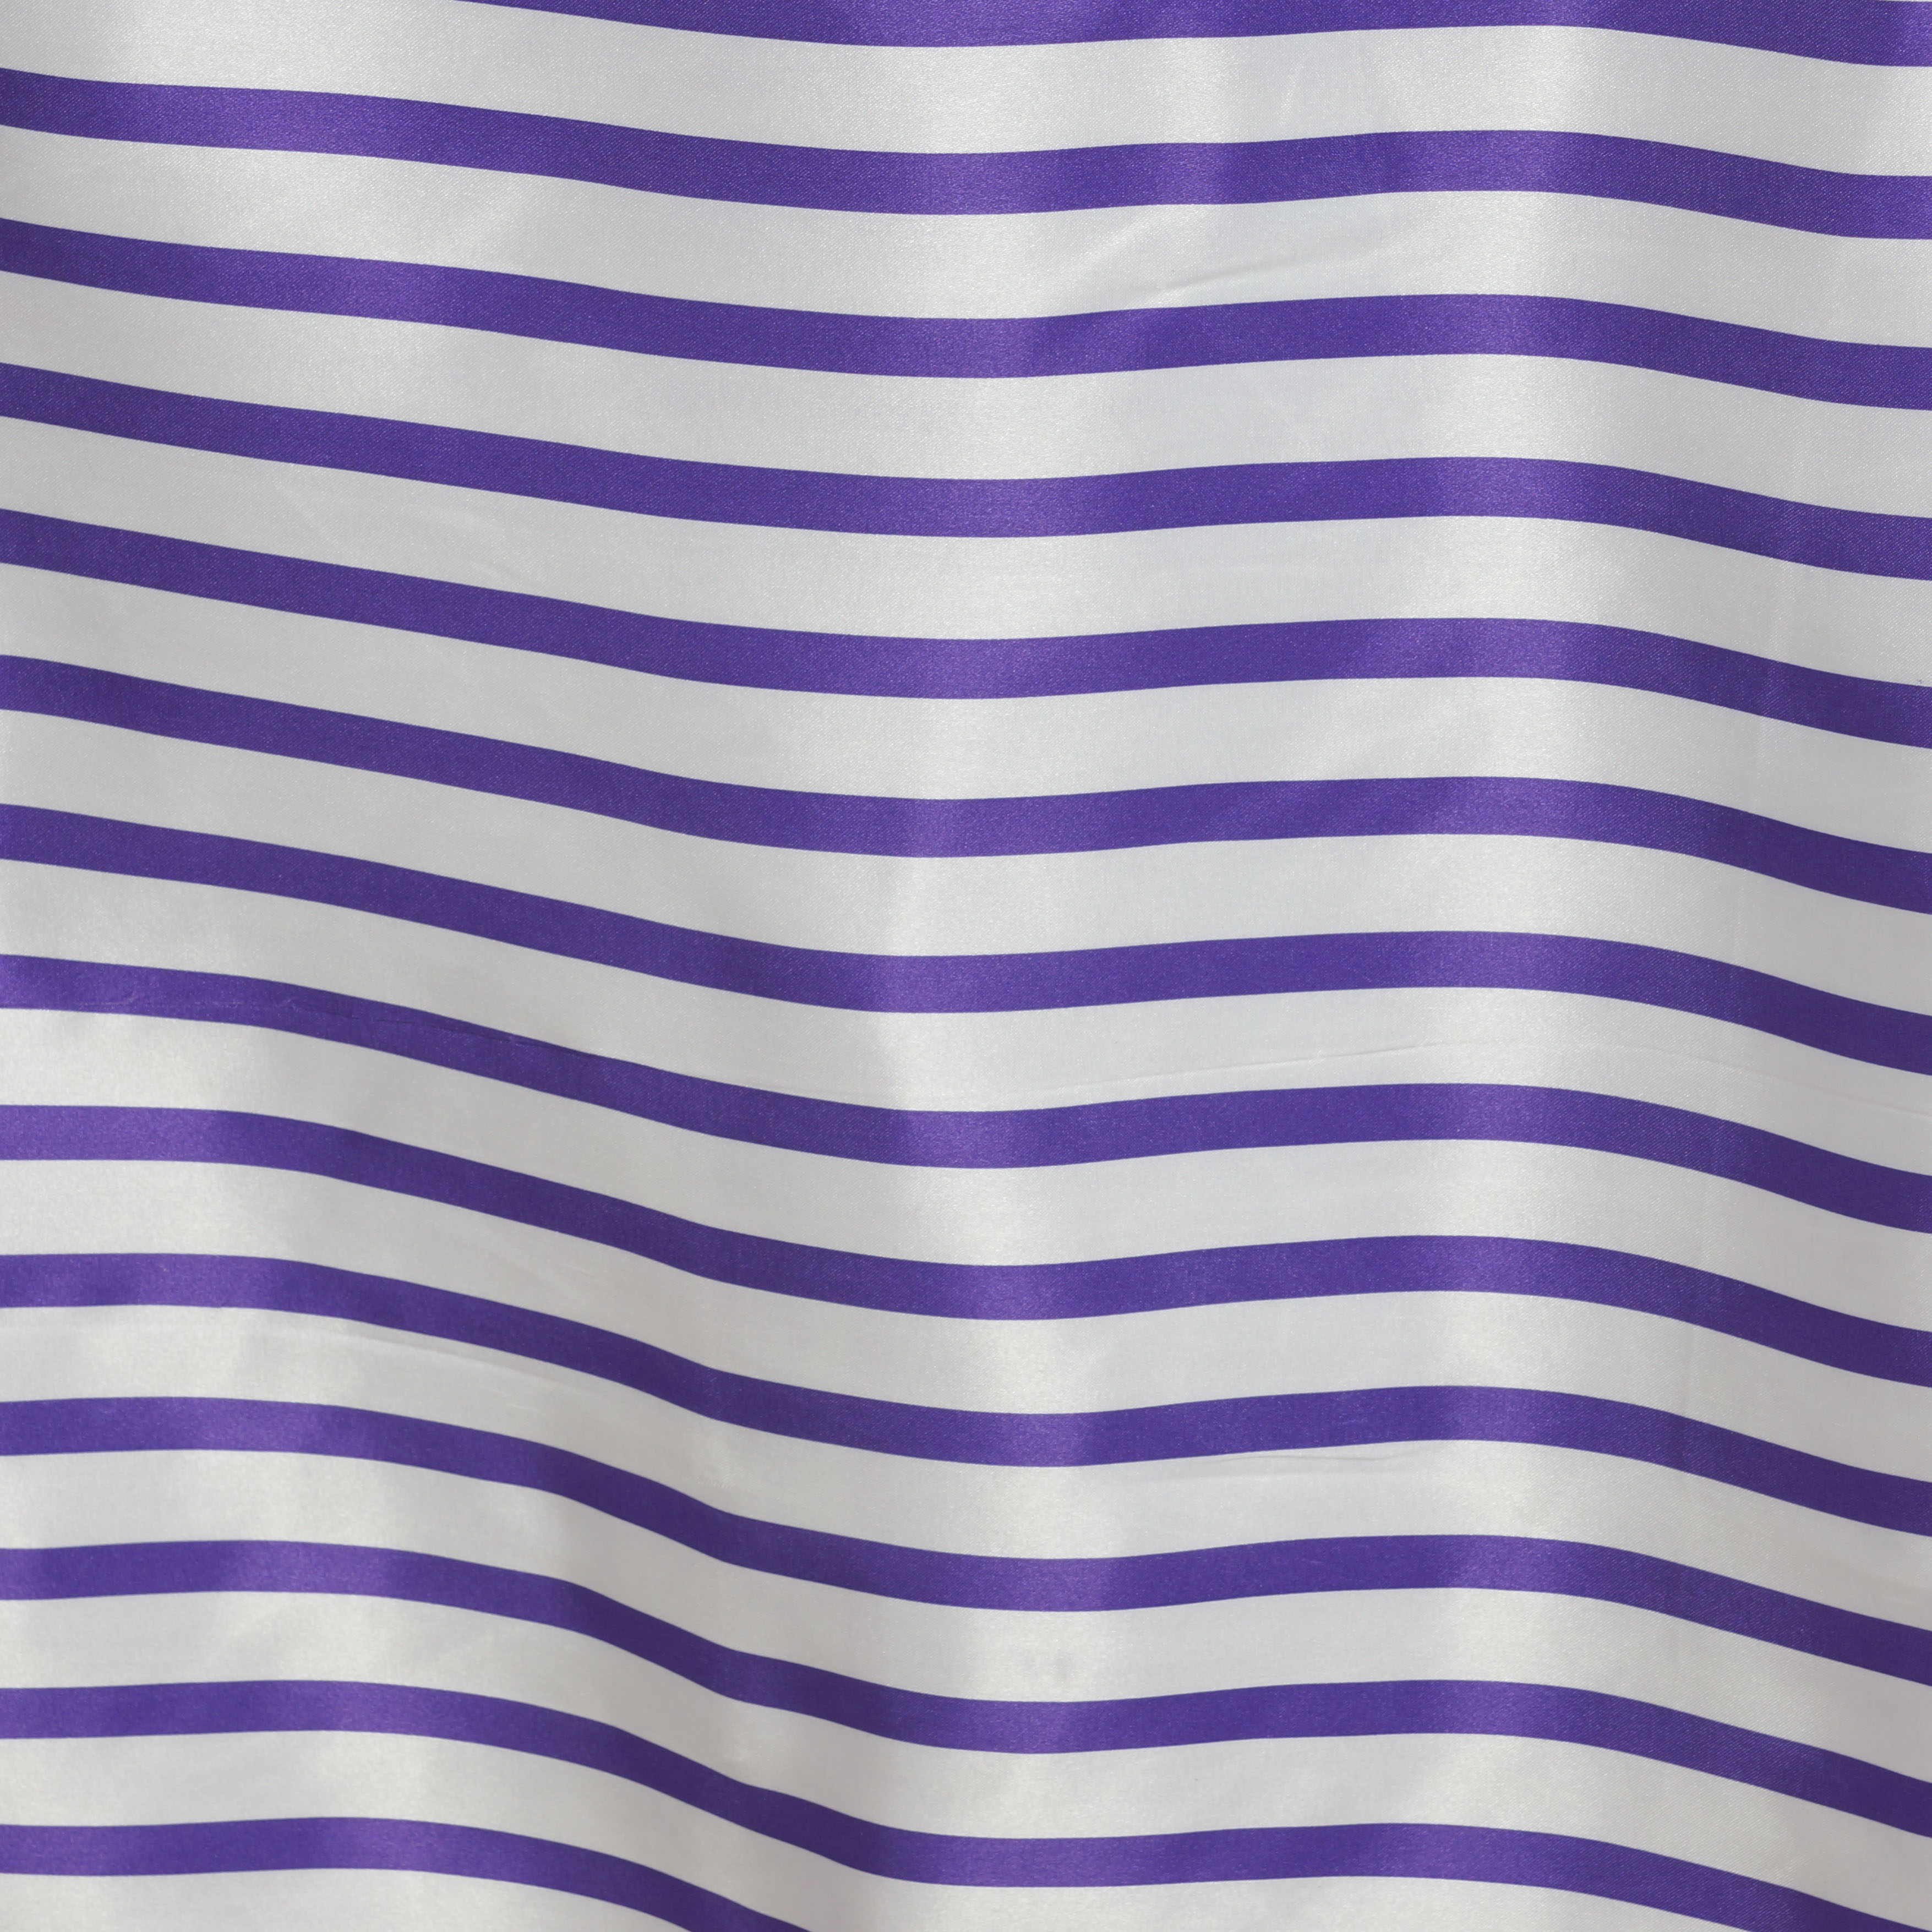 RECTANGULA-R-Striped-Satin-Tablecloth-Catering-Dinner-Wedding-Party-Linens-SALE thumbnail 7